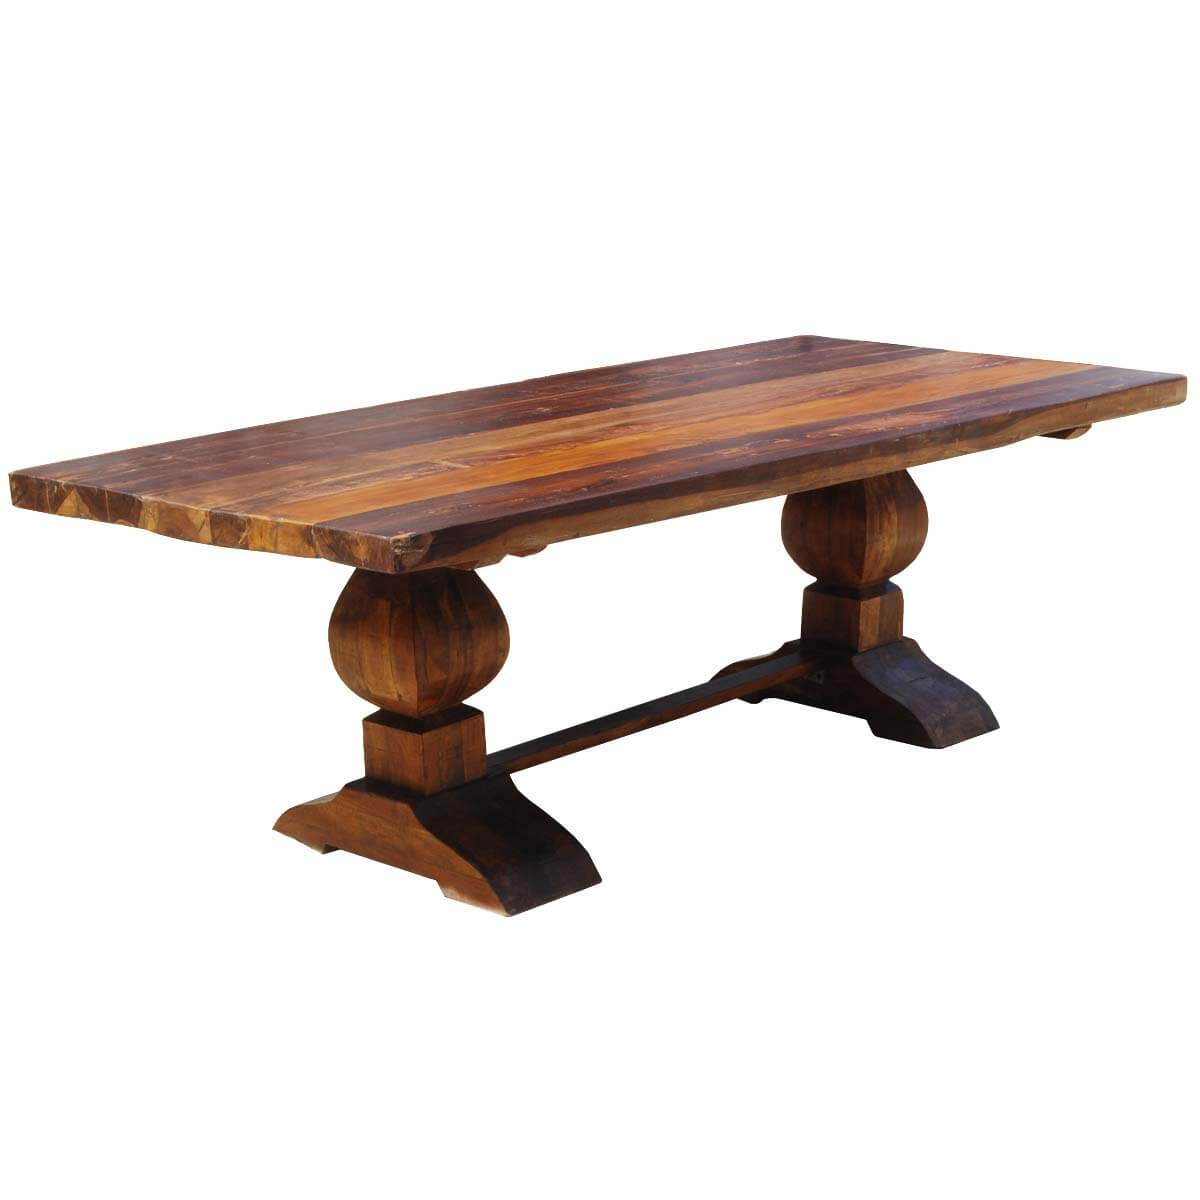 Rustic Wooden Dining Room Table ~ Large rustic reclaimed wood double trestle pedestal dining